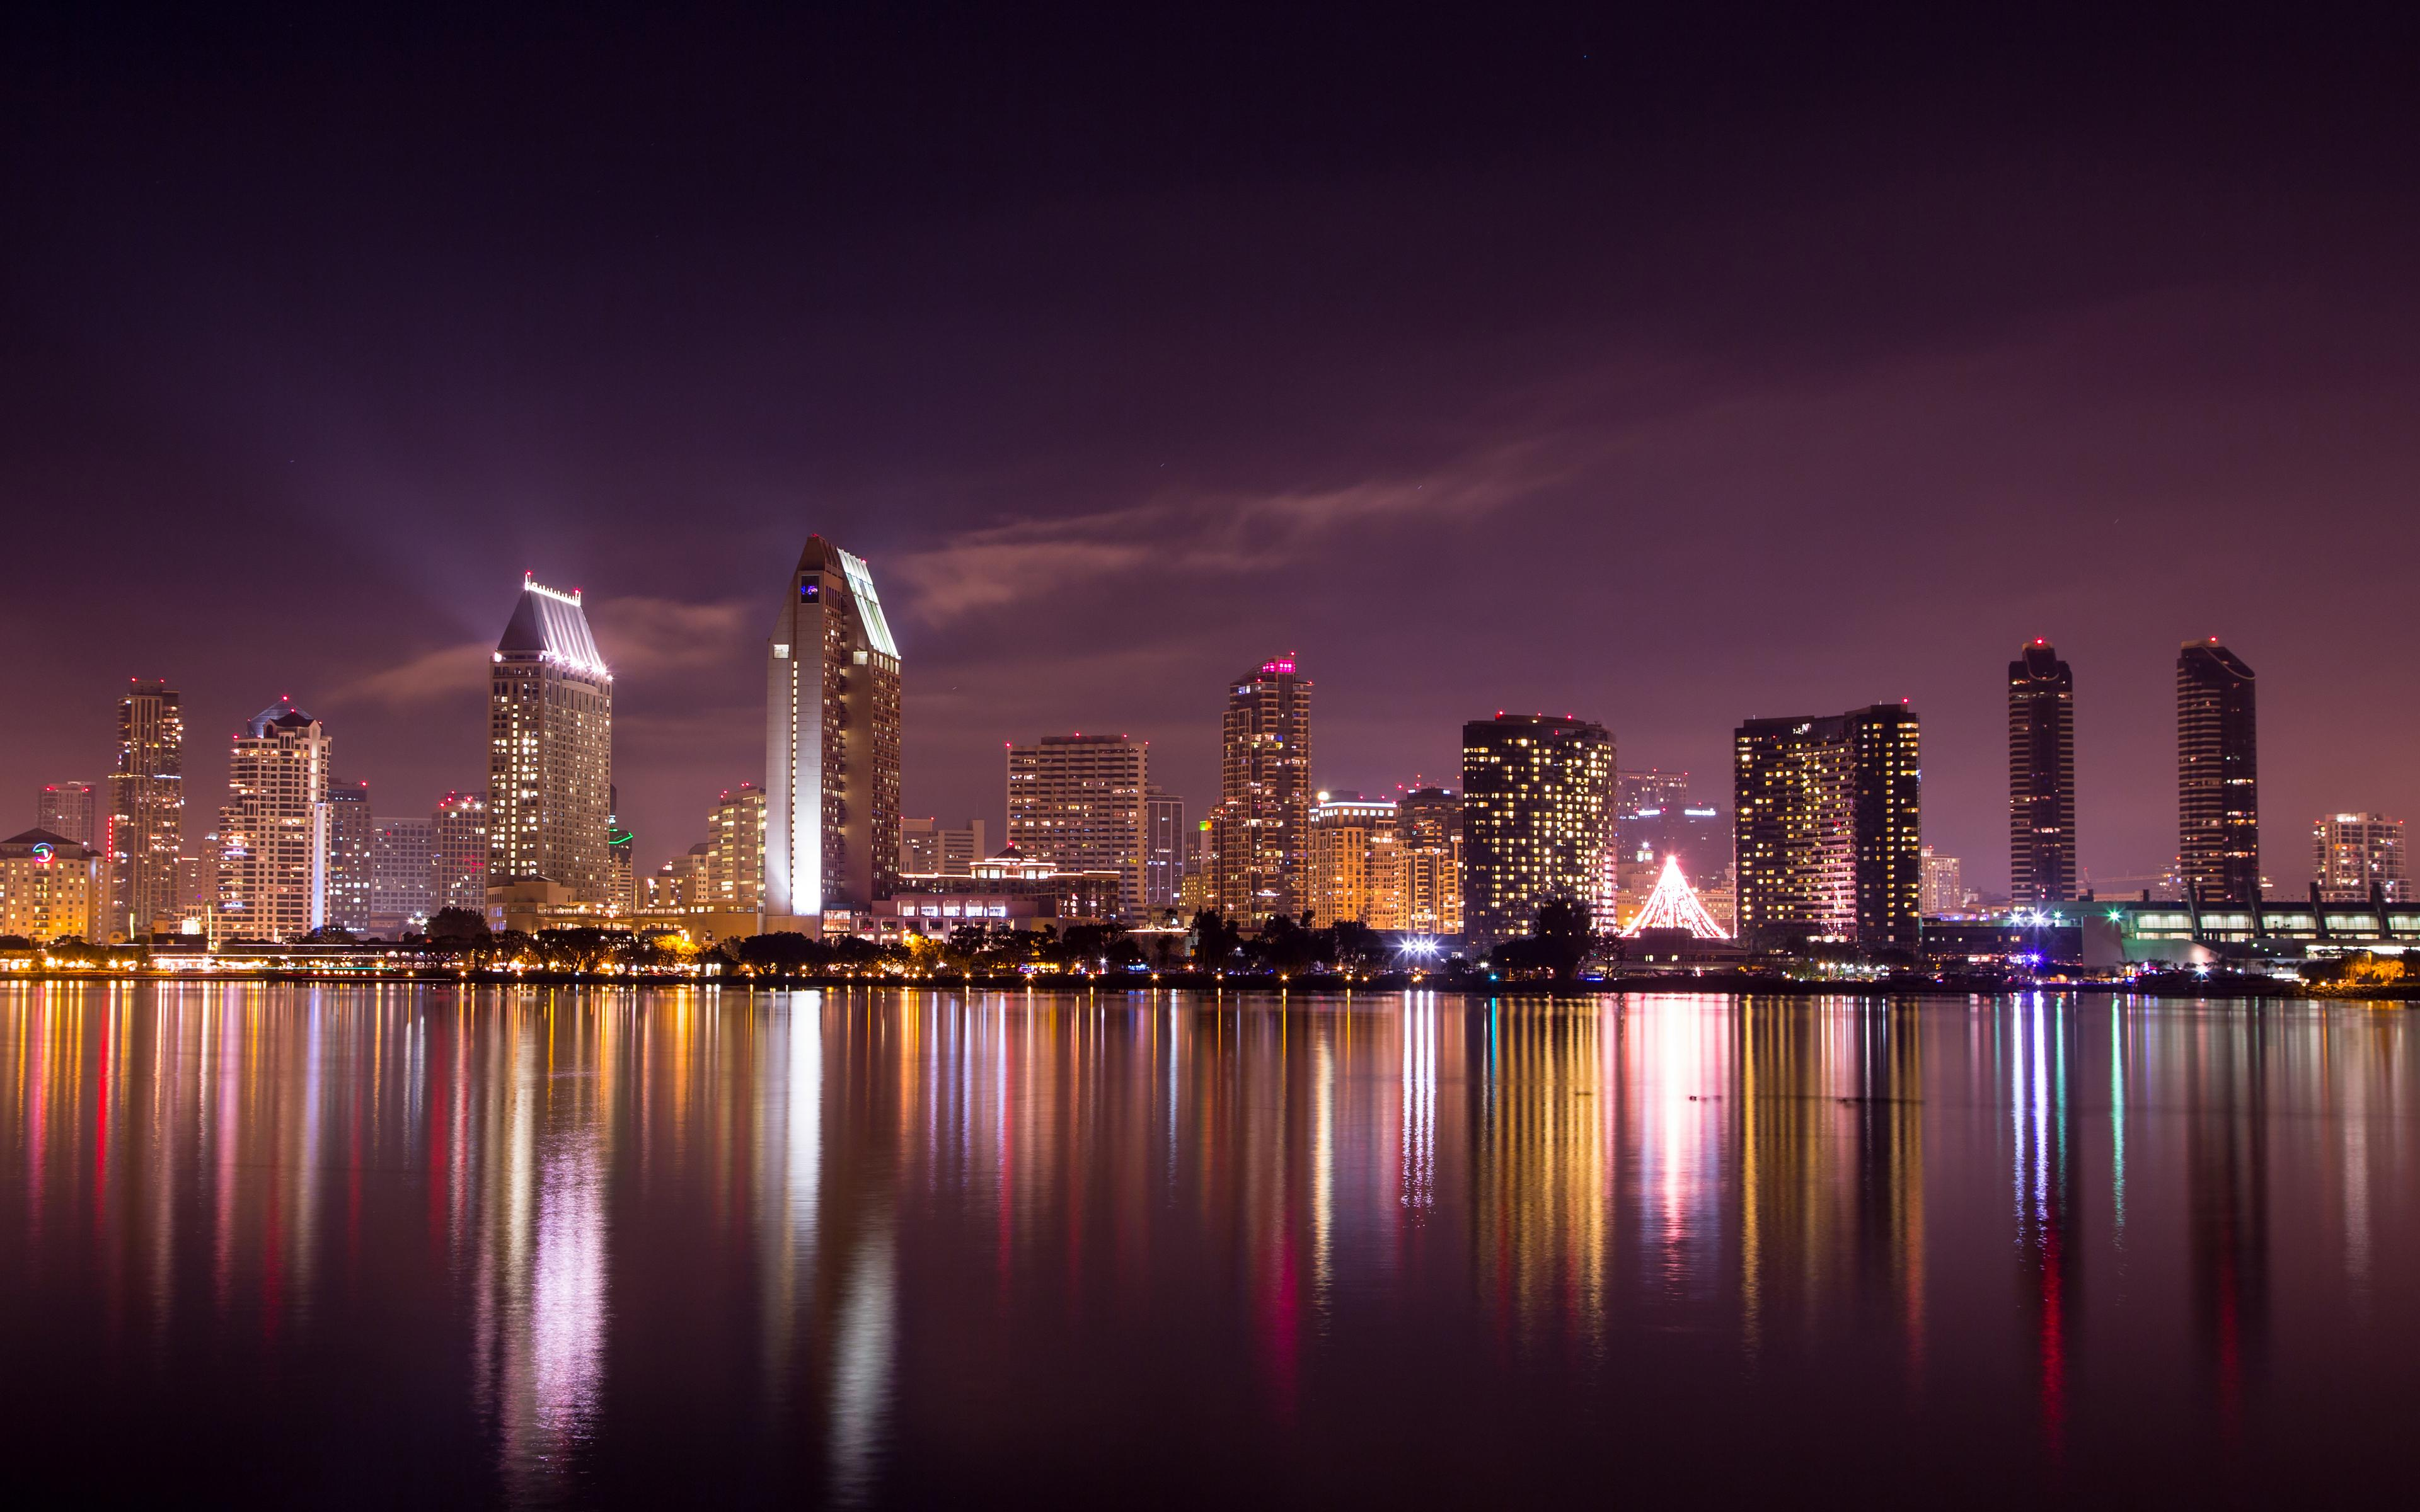 San Diego Skyline Wallpaper #52725 - Resolution 3840x2400 px